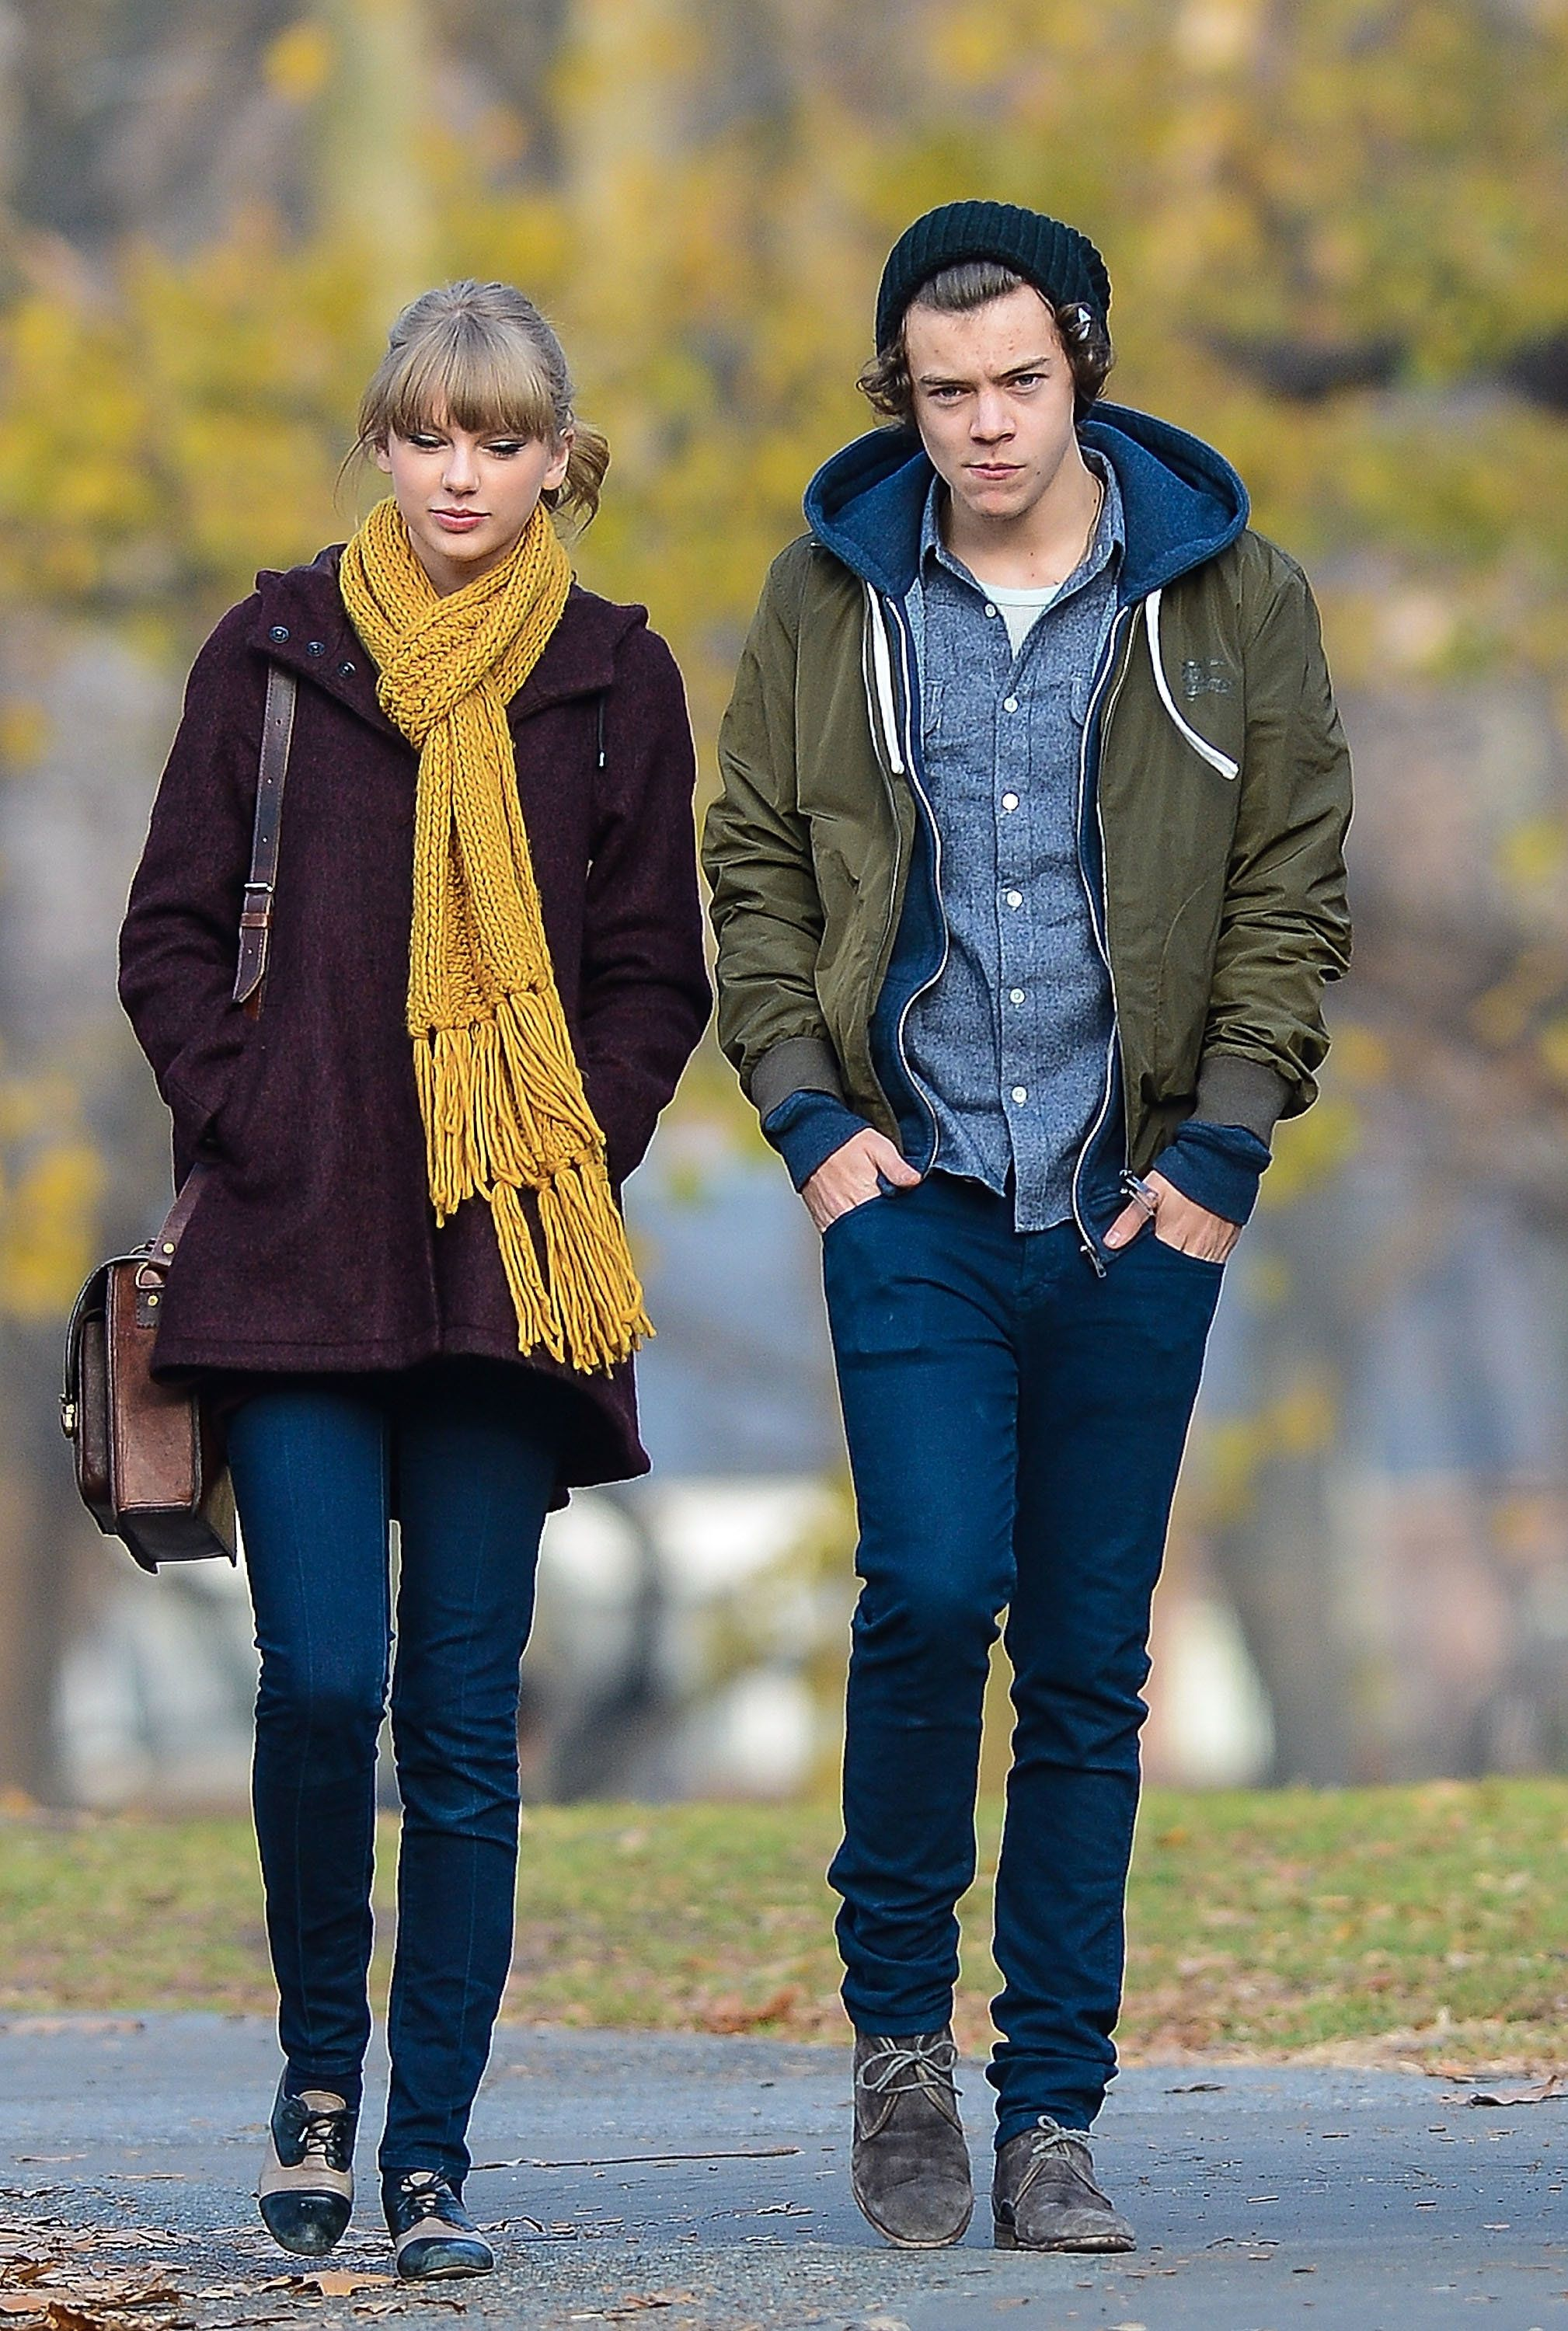 Harry Styles Breaks Silence On Taylor Swift Romance, Five Years After Their